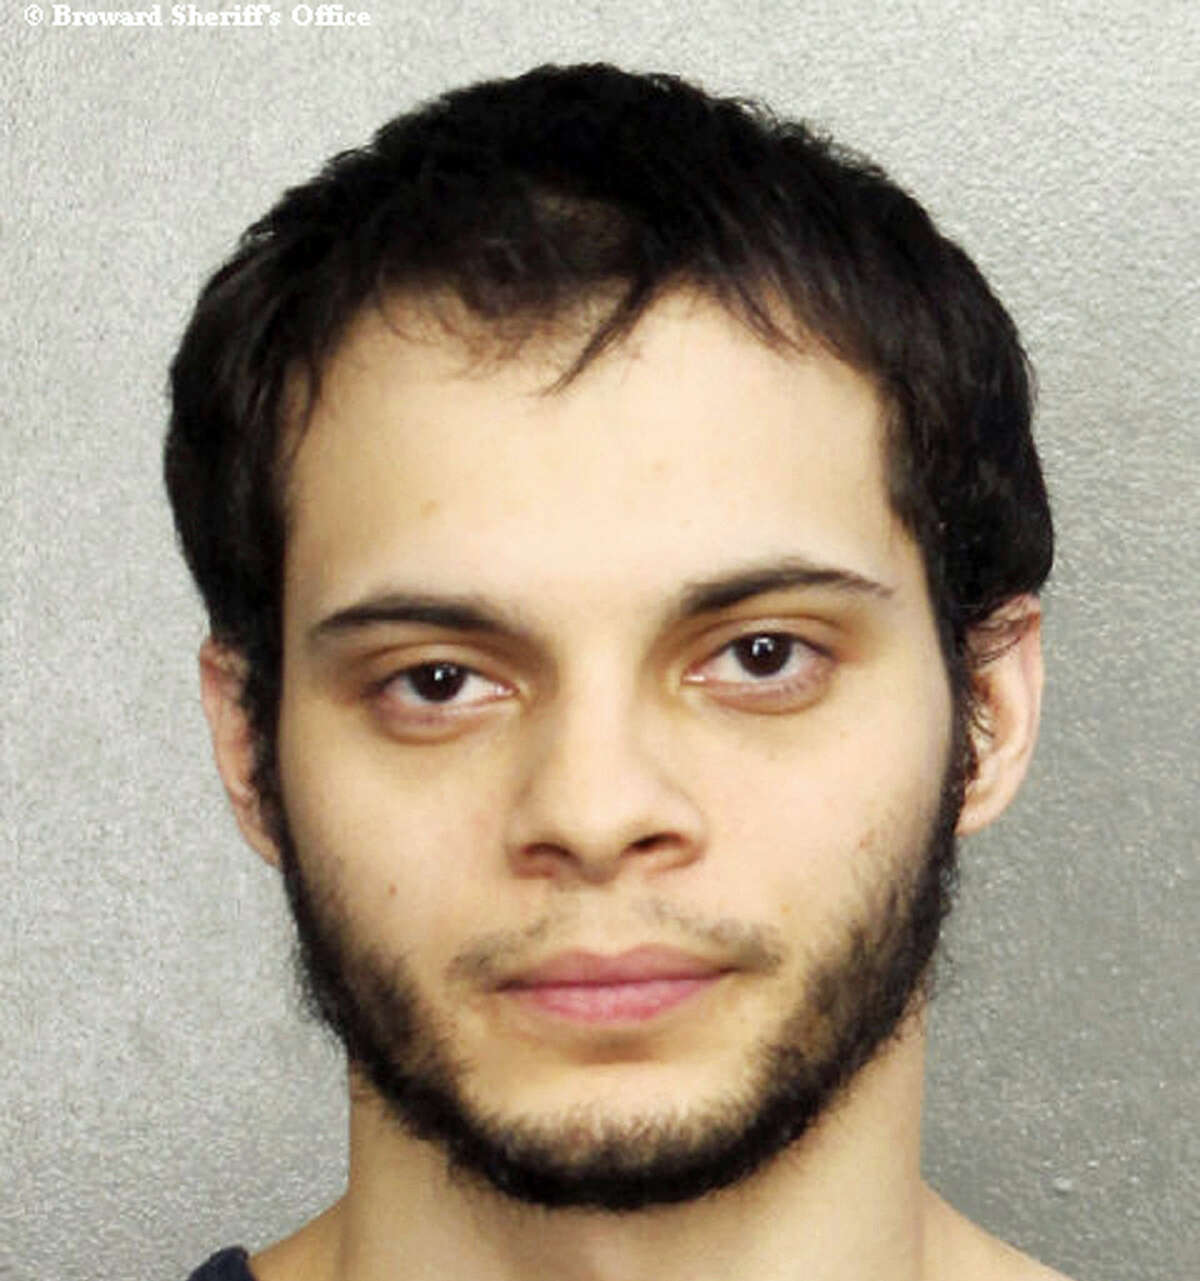 This booking photo provided by the Broward Sheriff's Office shows suspect Esteban Ruiz Santiago, 26, Saturday, Jan. 7, 2017, in Fort Lauderdale, Fla.